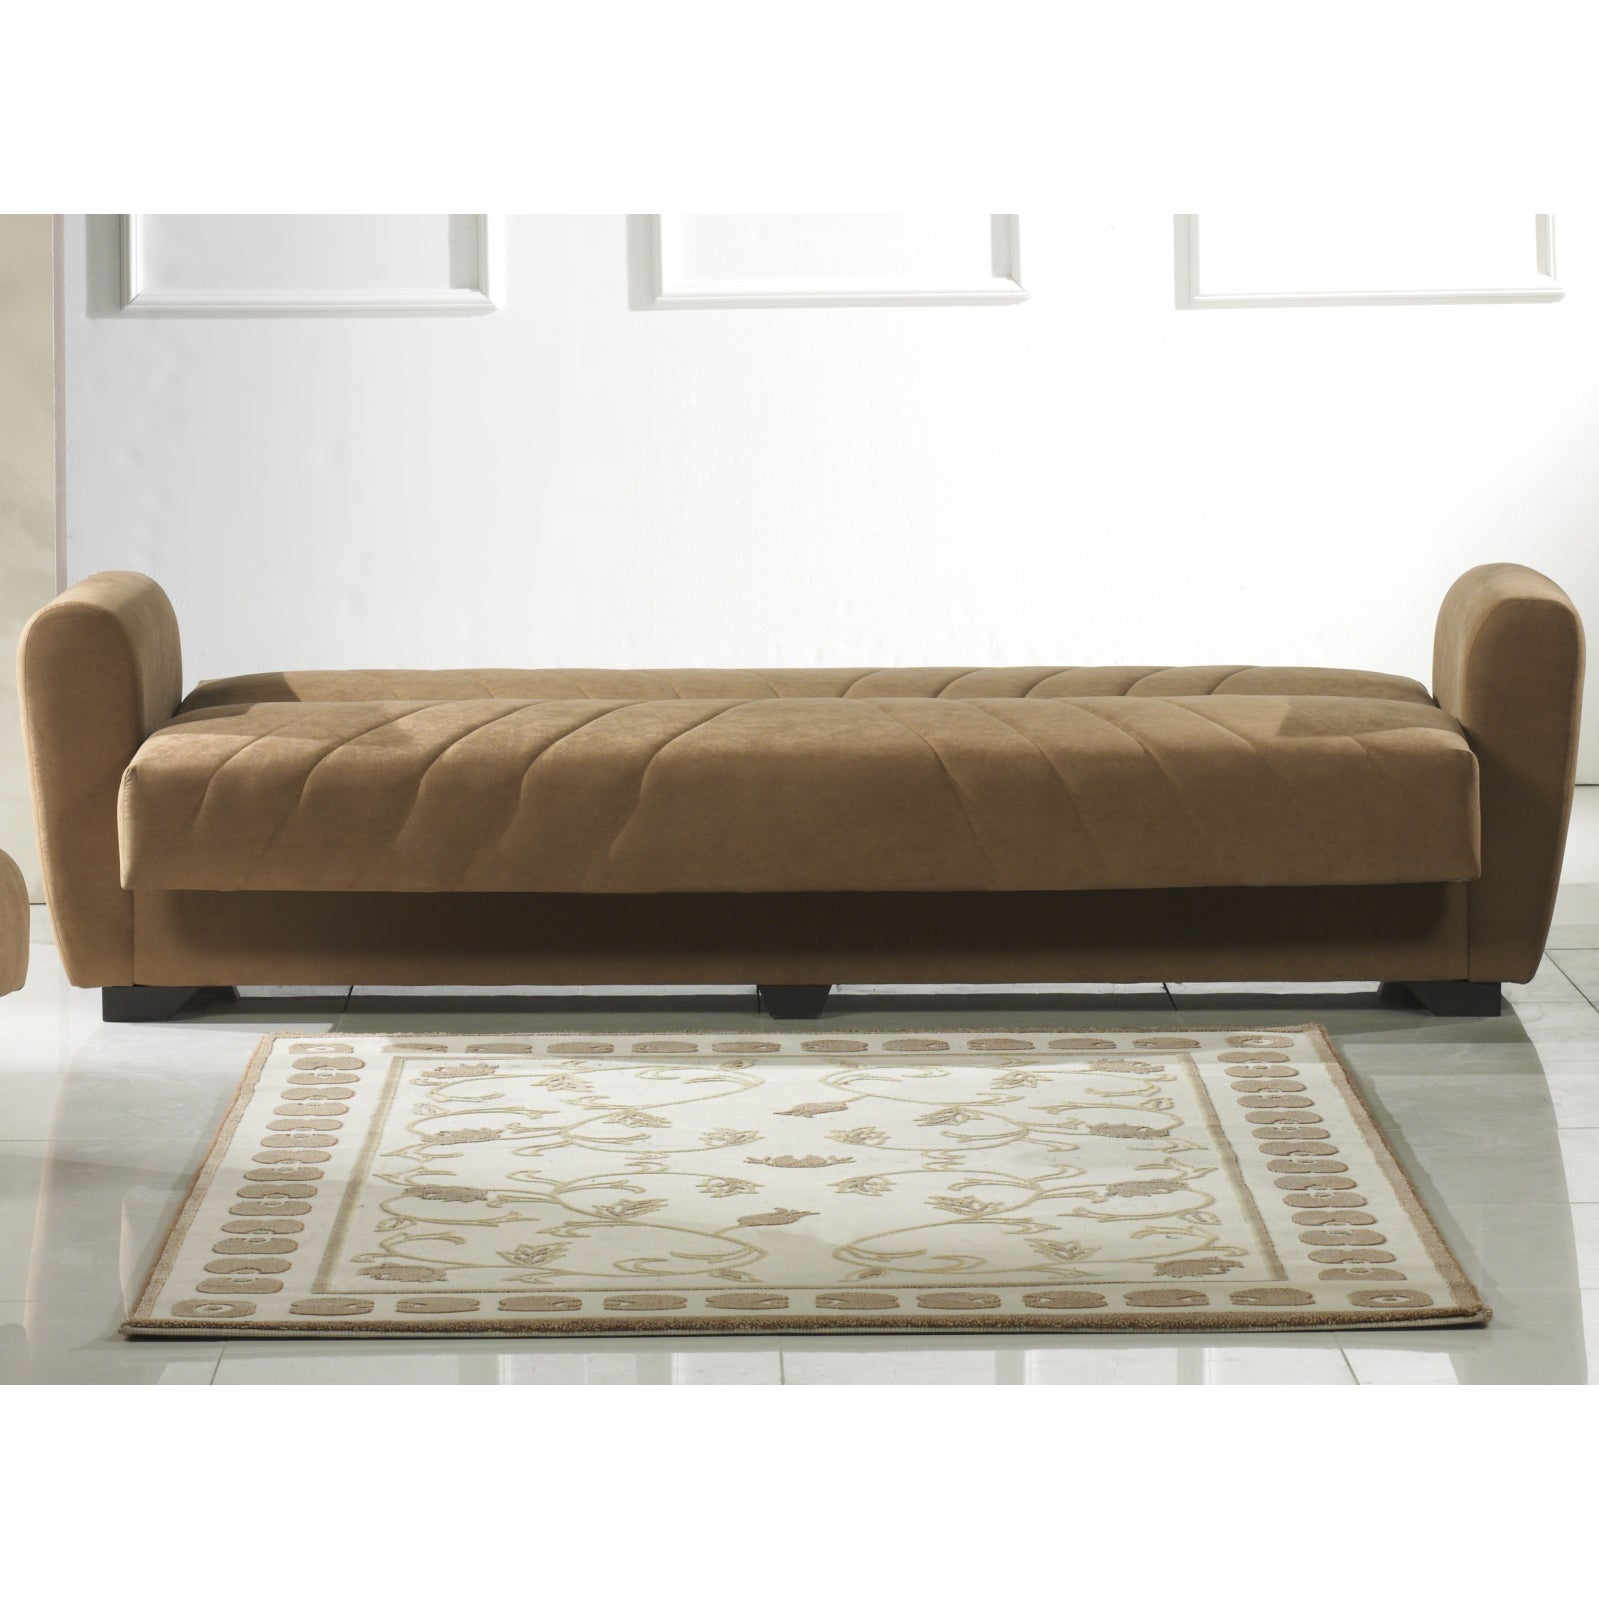 Tampa Sleeper Futon Sofabed Multi Free Shipping Today Com 7861940